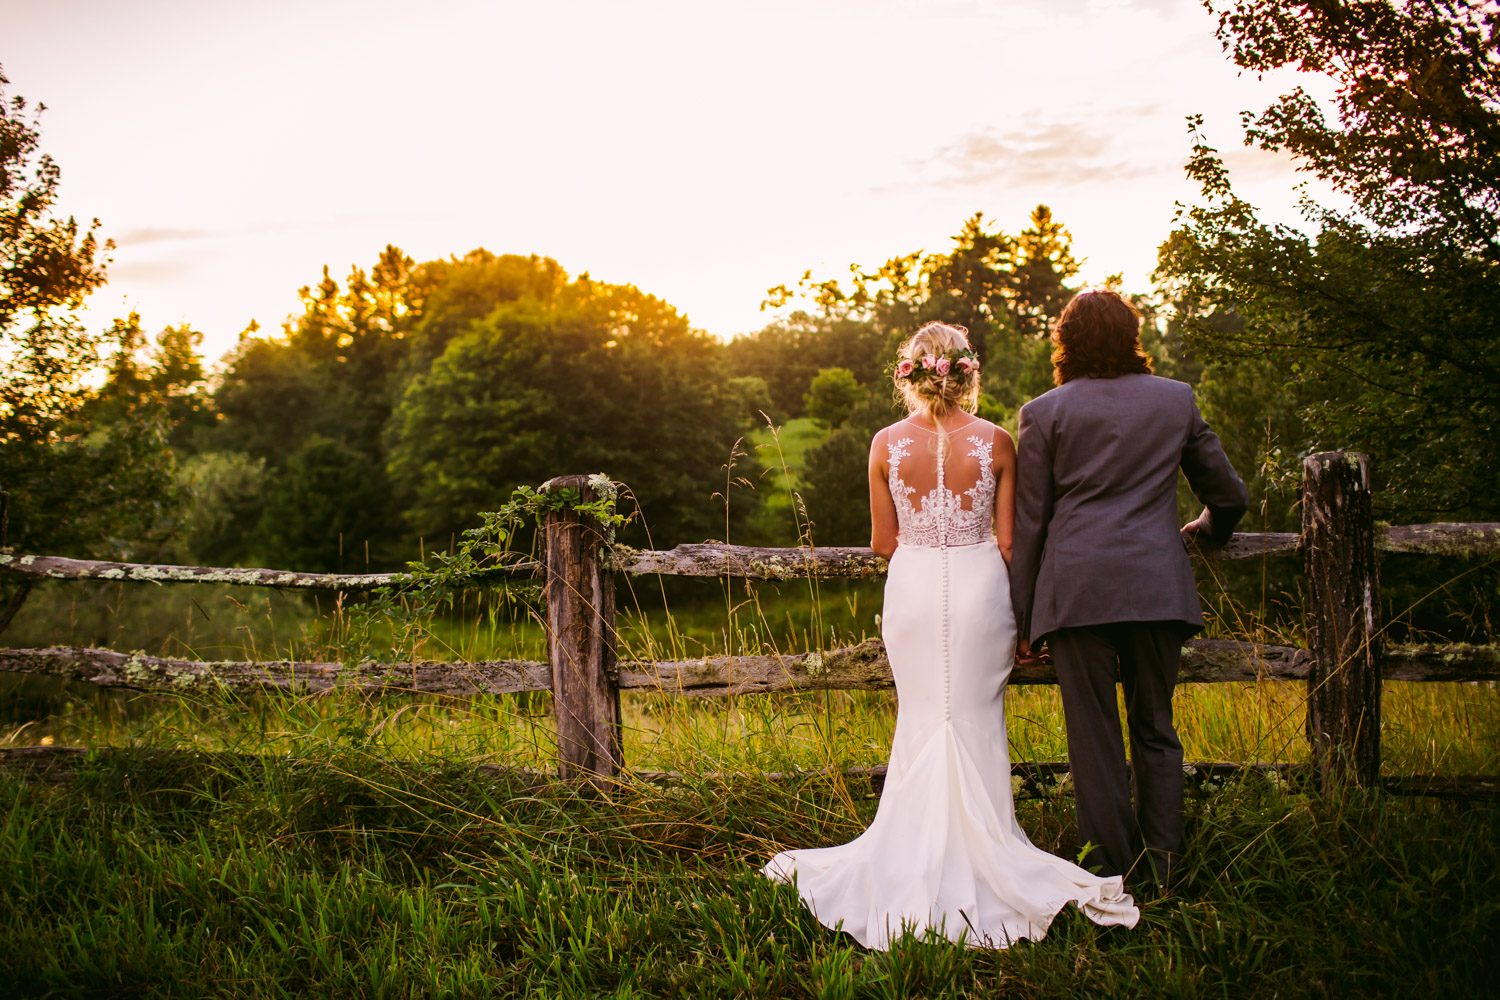 Sunset Portrait Sawyer Family Farmstead Cashiers NC Wedding Photographers